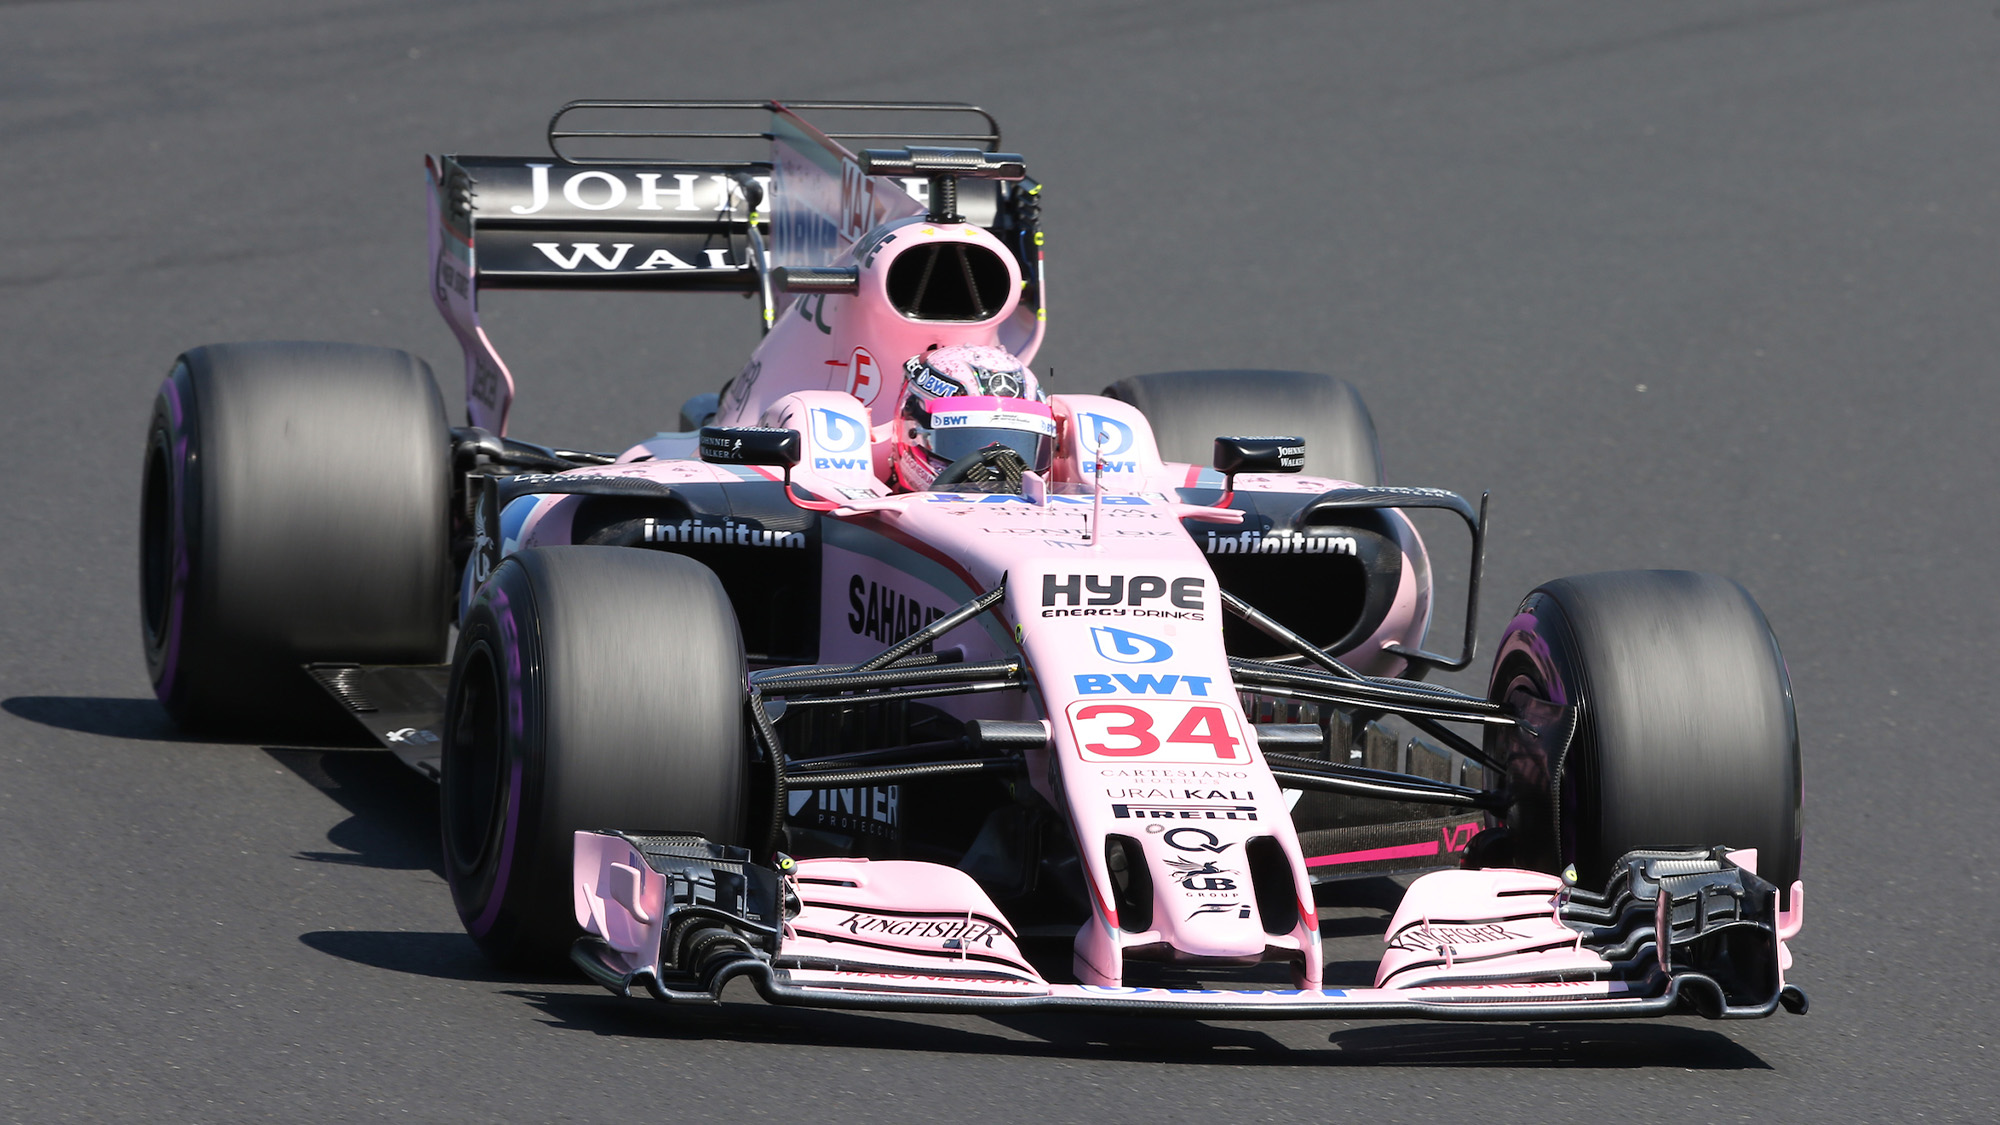 Nikita Mazepin Force India 2017 F1 test